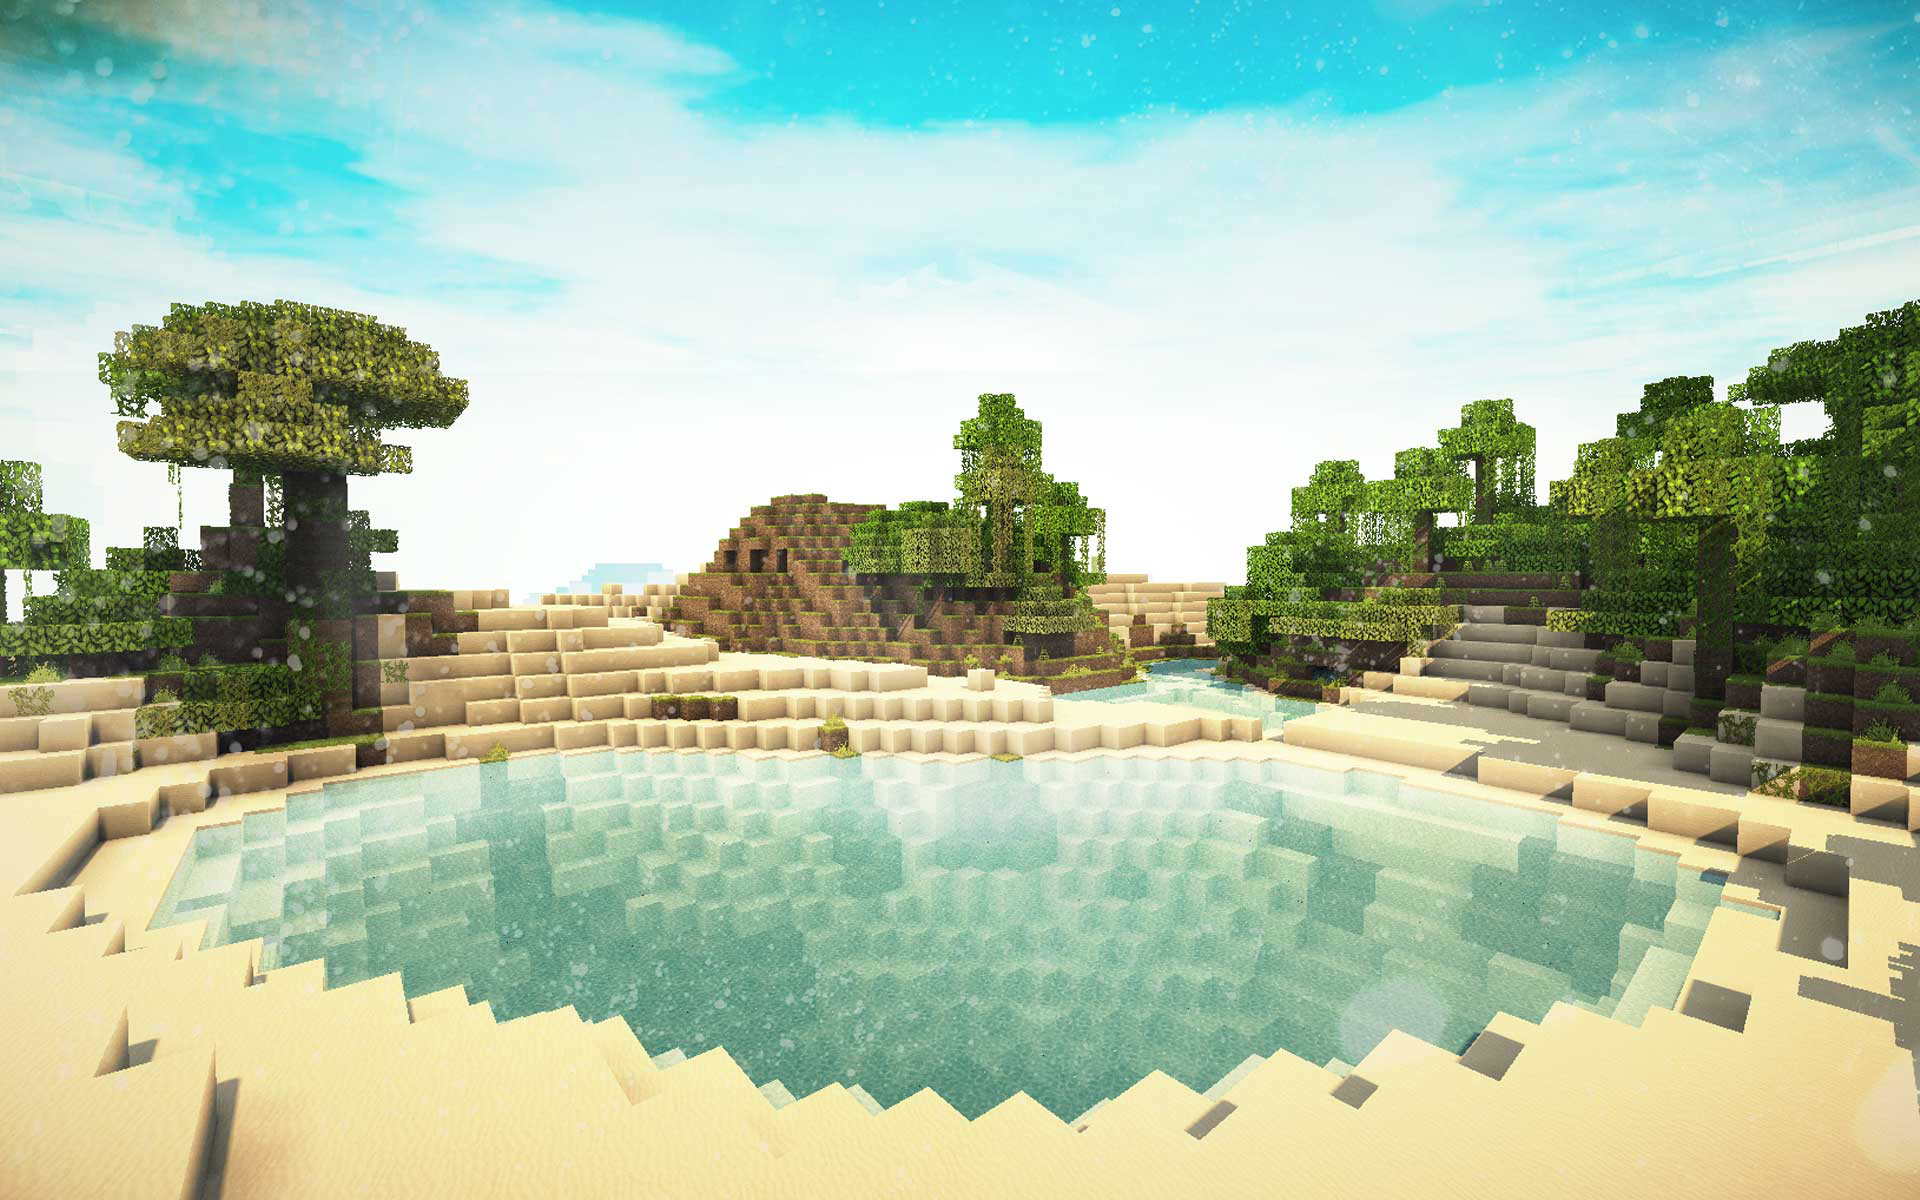 minecraft wallpaper 1920x1200 original - photo #30